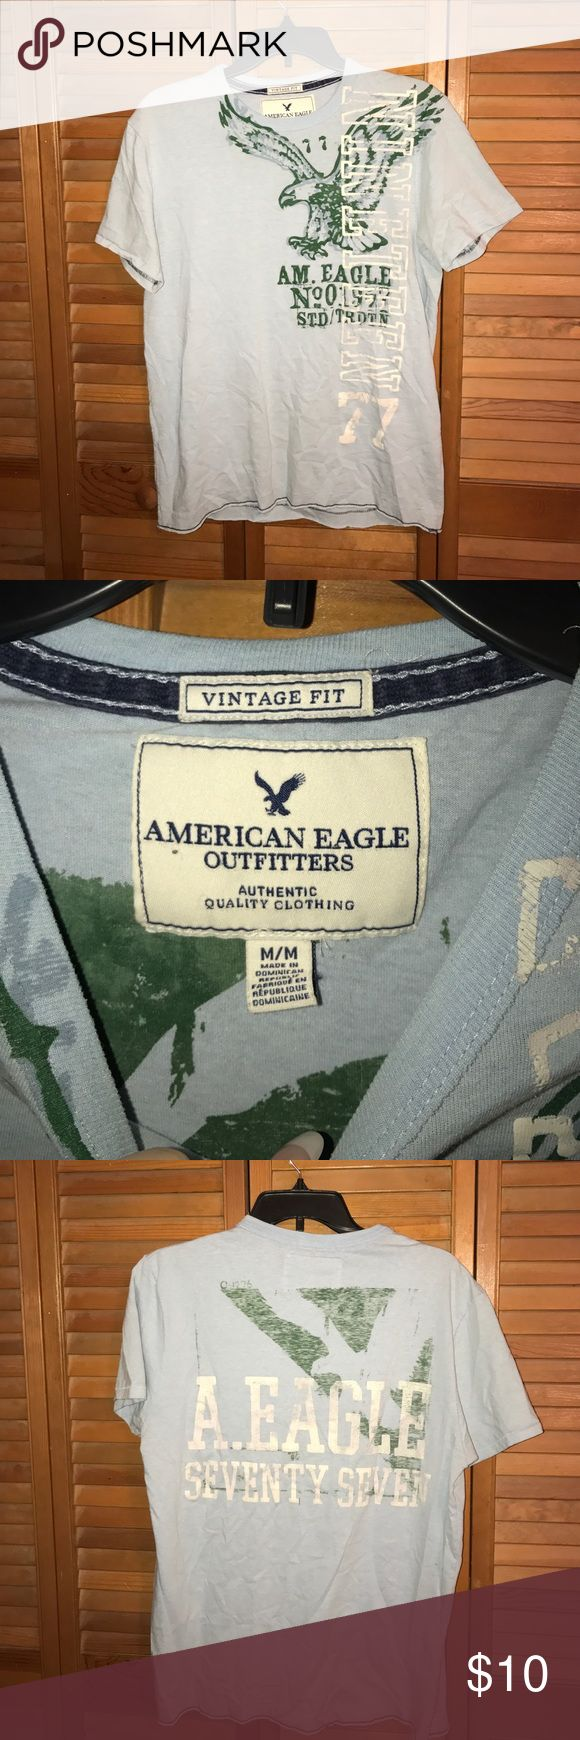 Men's American Eagle Men's American Eagle shirt size medium. Great condition! American Eagle Outfitters Shirts Tees - Short Sleeve